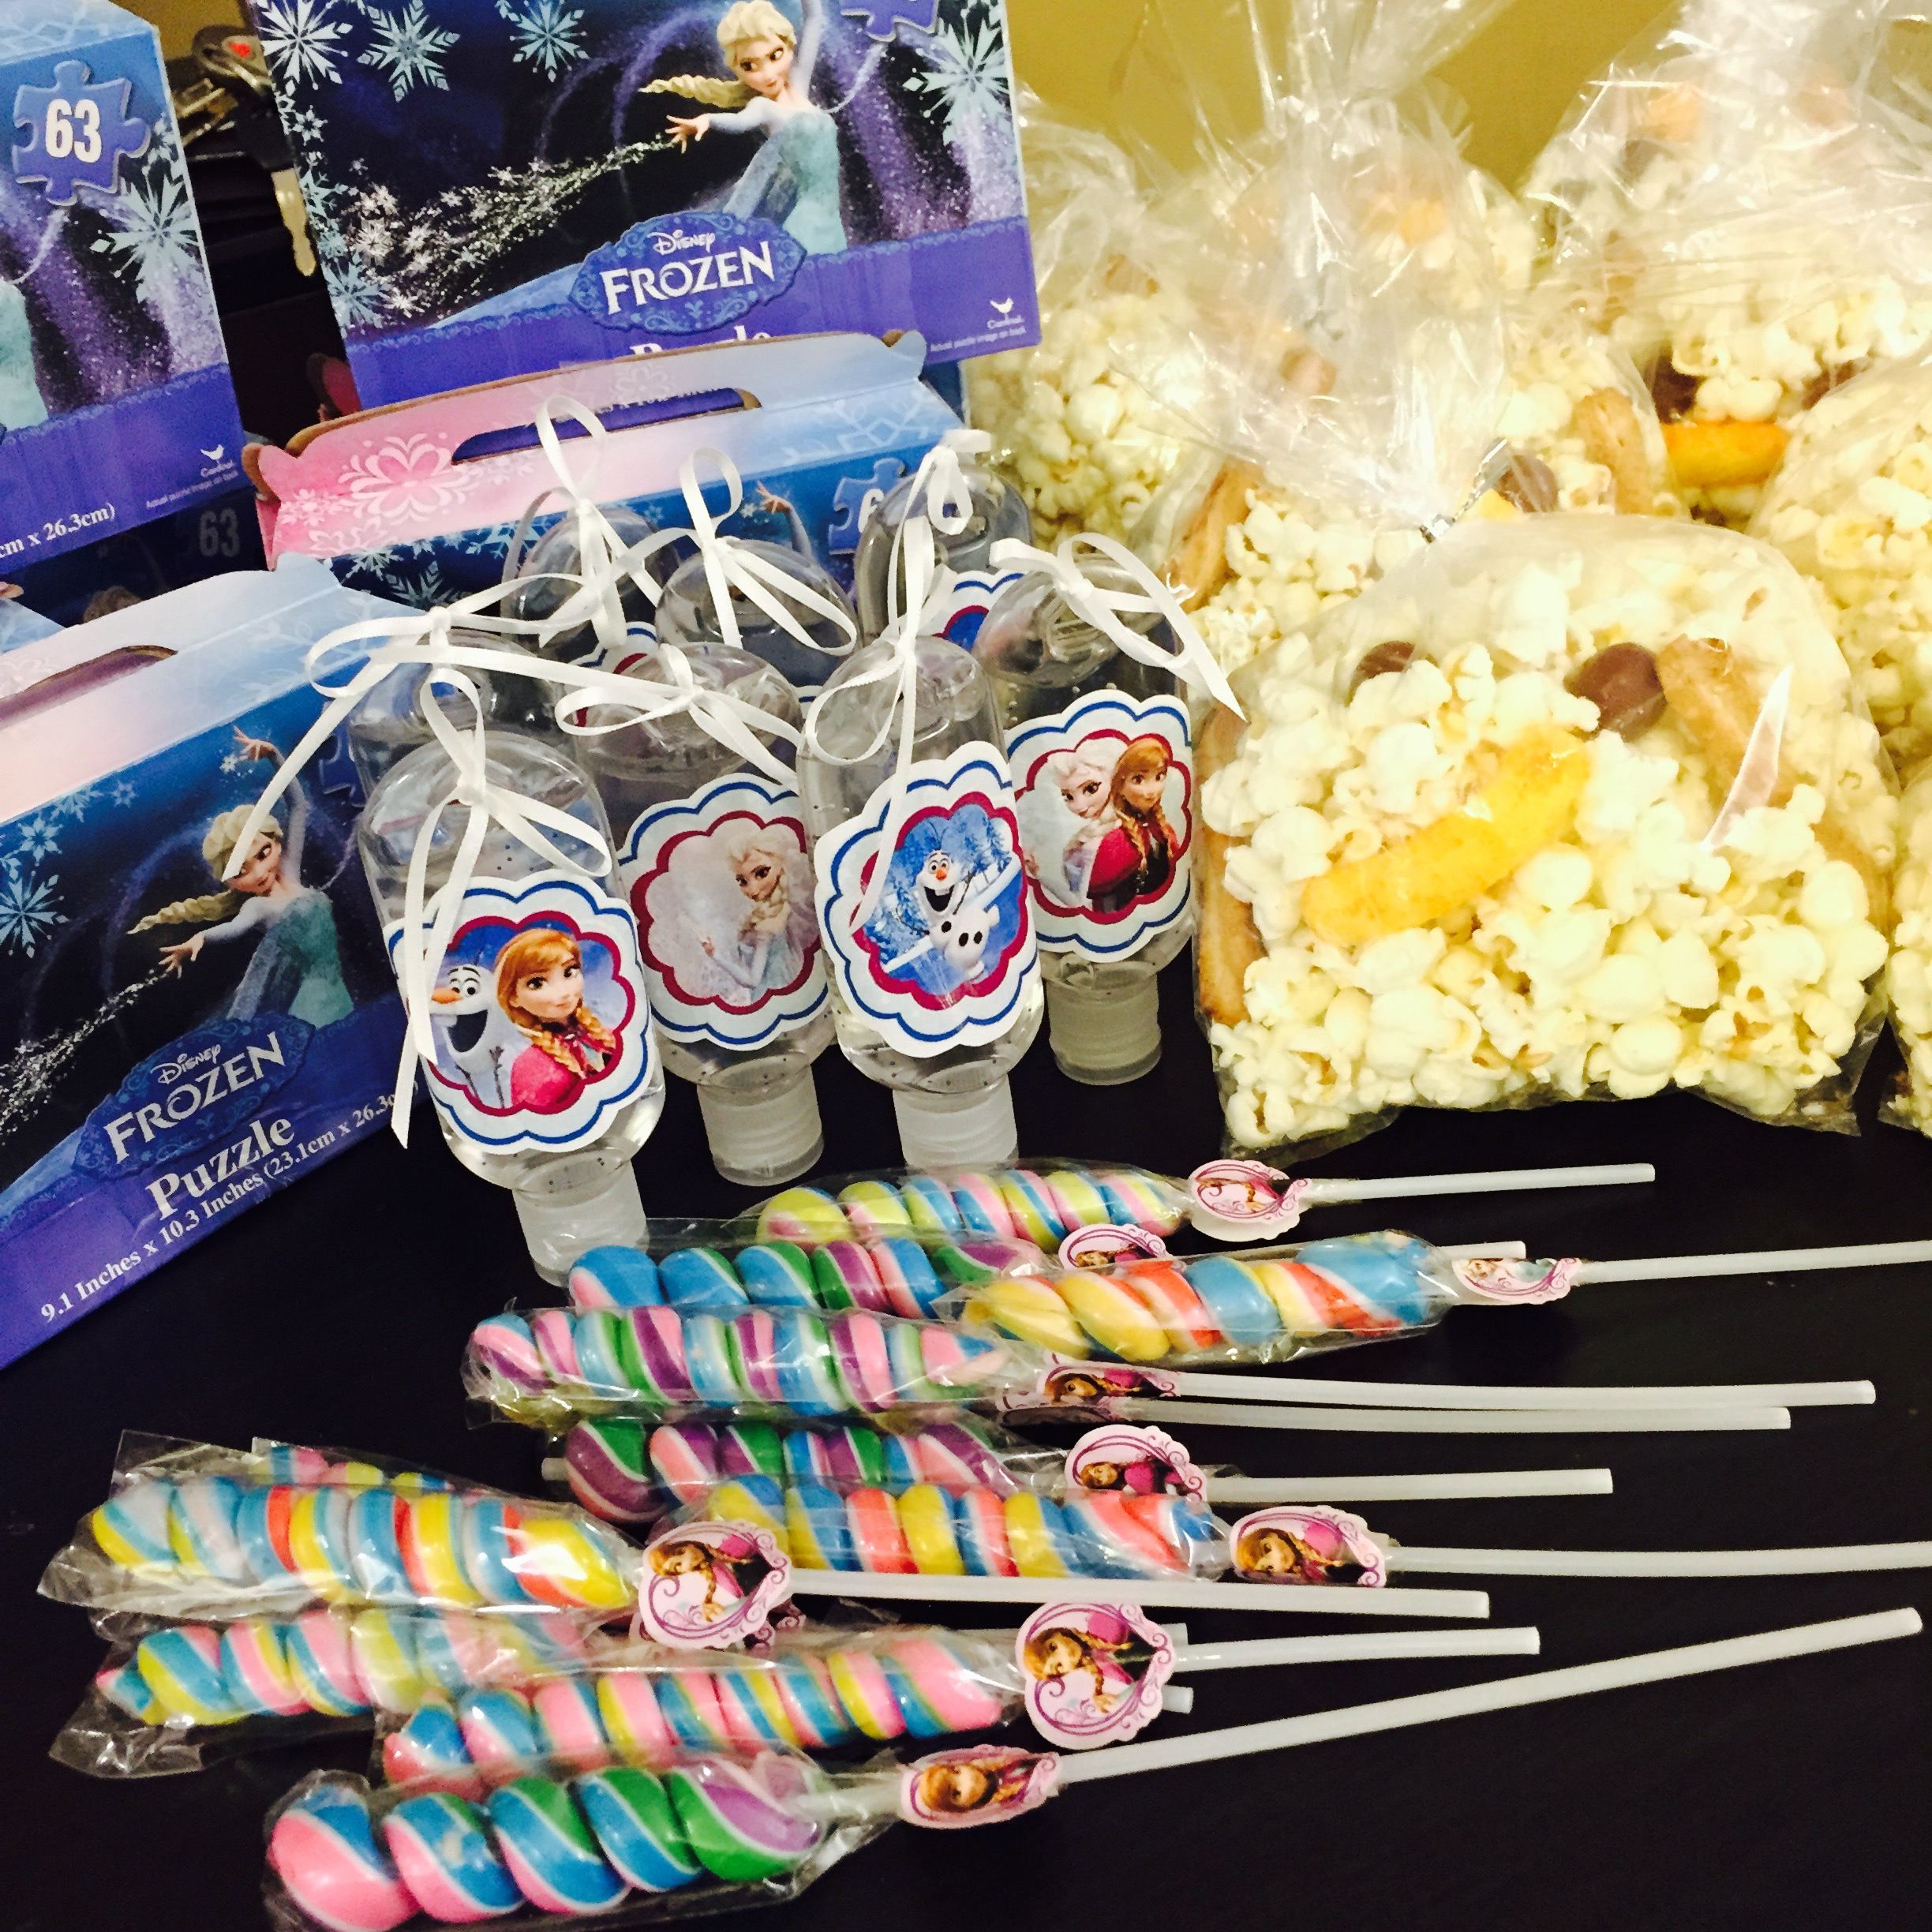 Disney Frozen Themed Birthday Party Favors